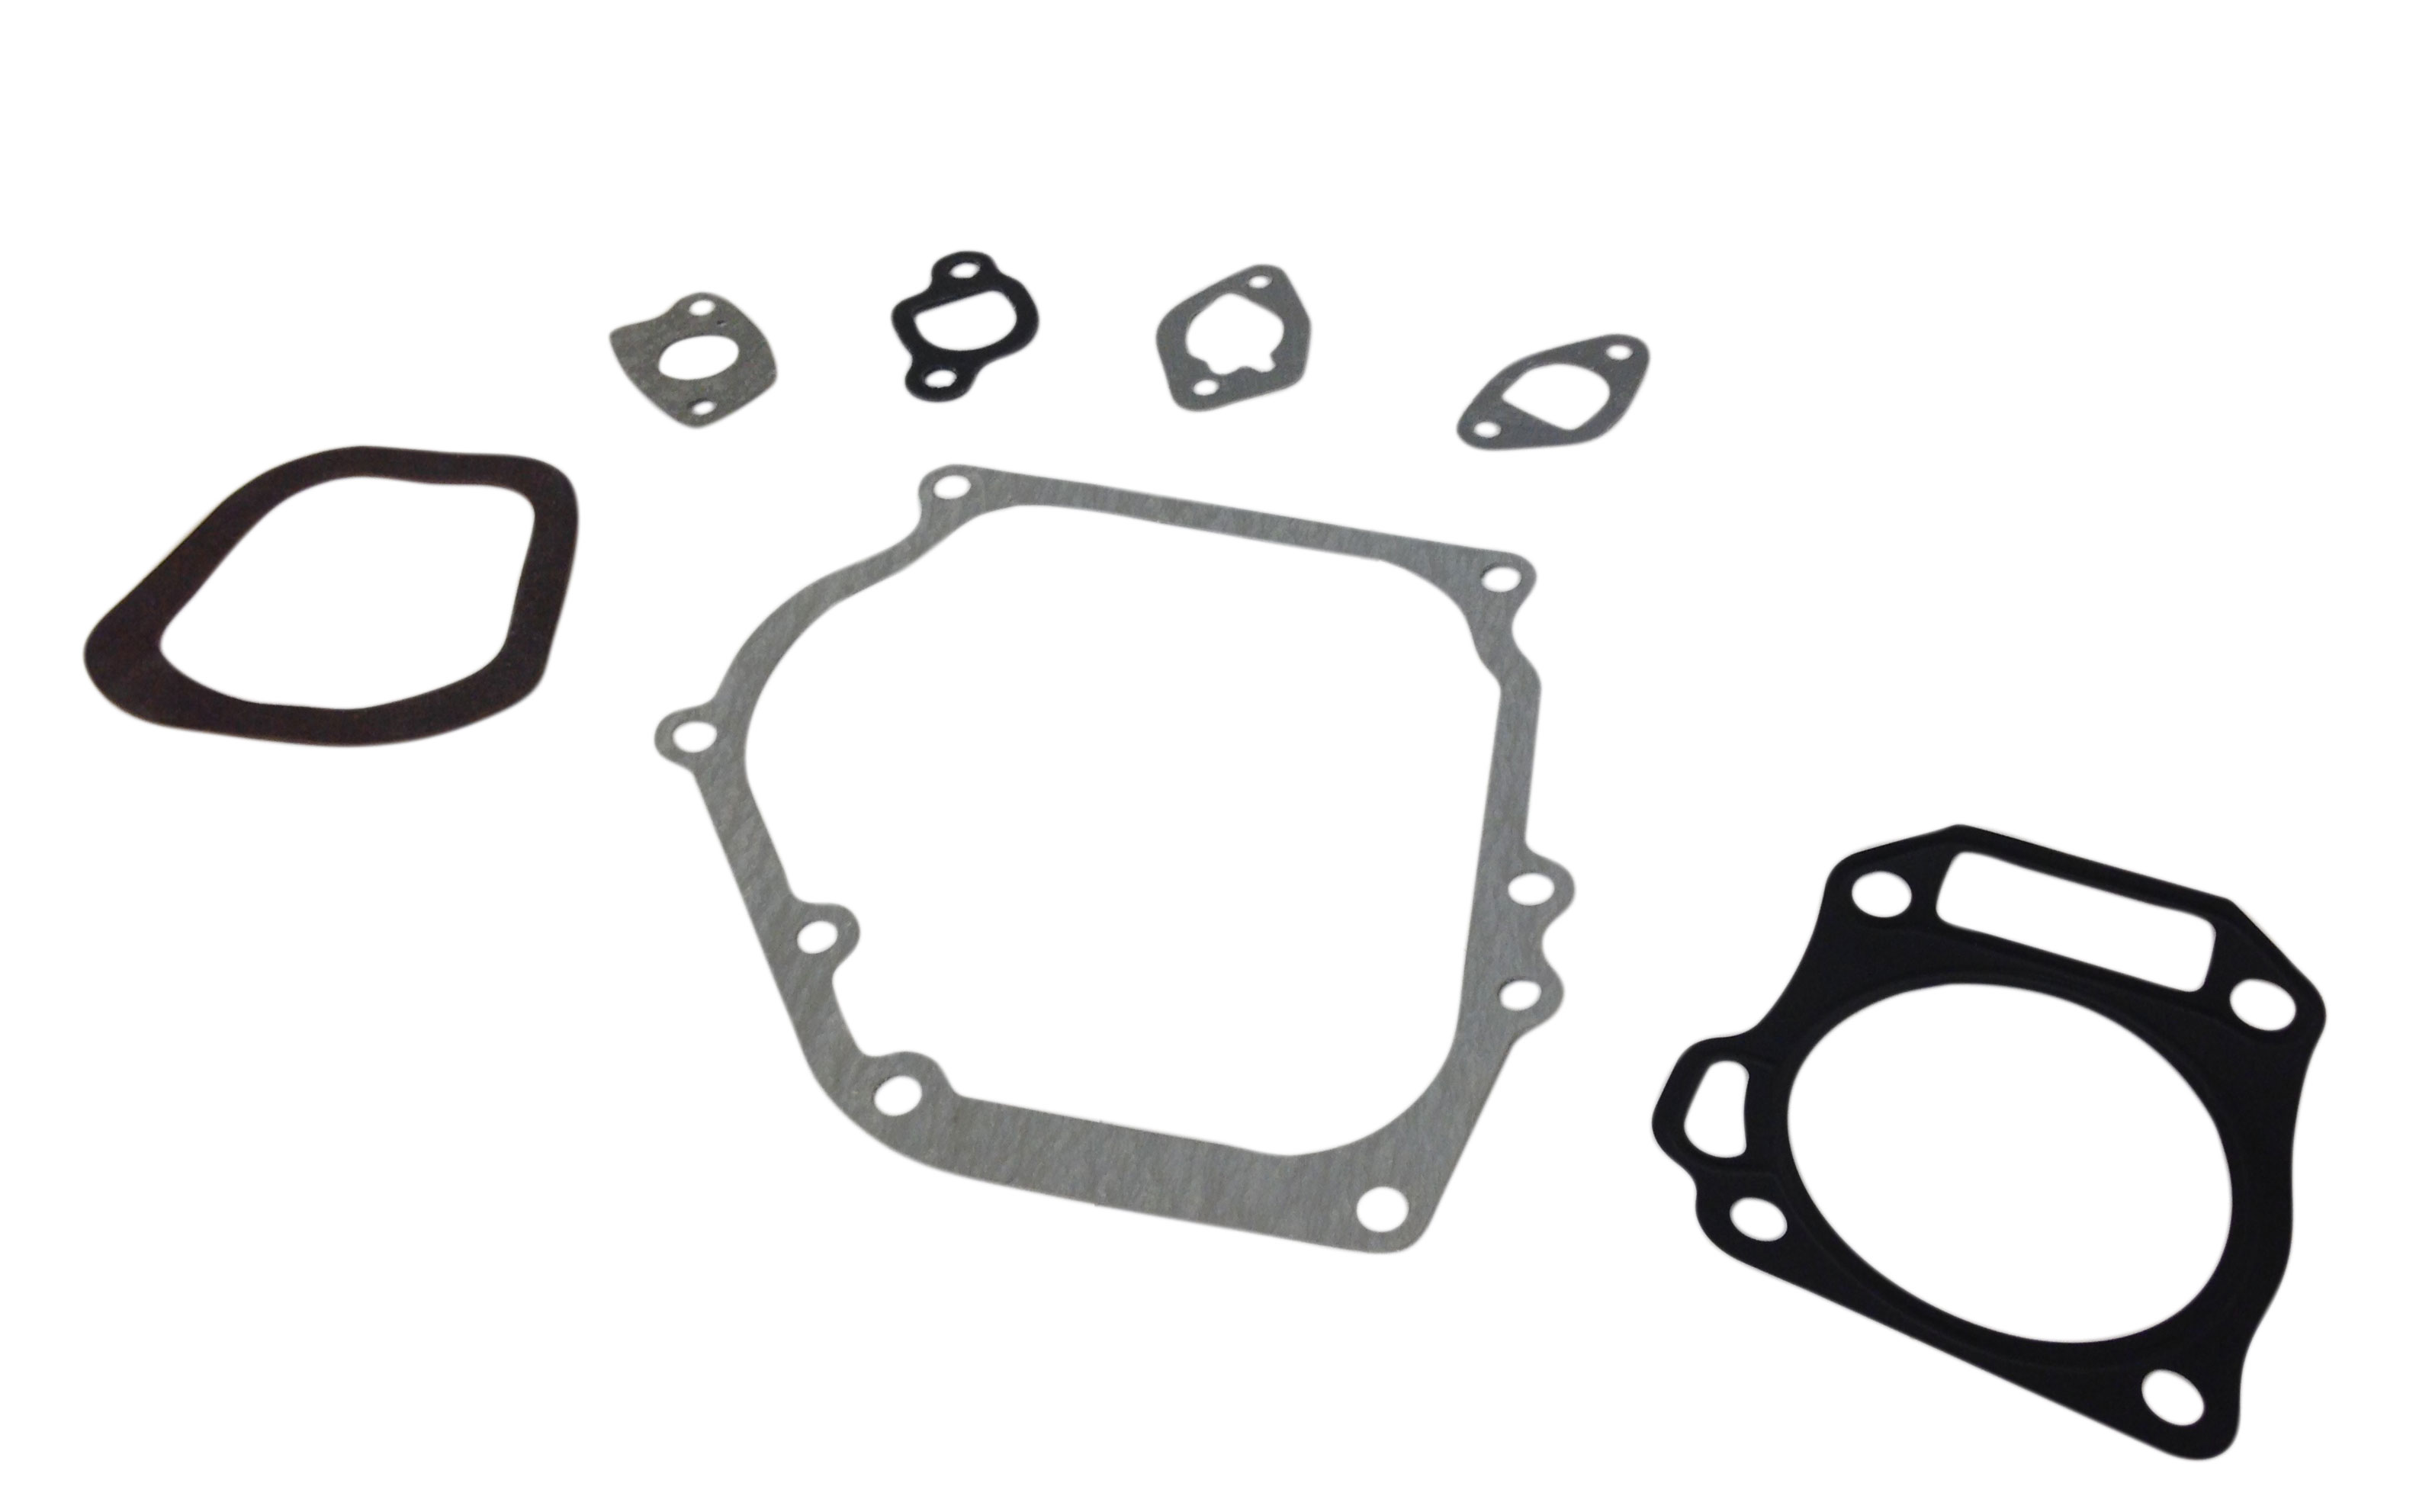 Replacement Gasket Kit for Honda GX200 Engine (7 piece set with asbestos)    AT1201-HD200-01   BMI Karts And Parts